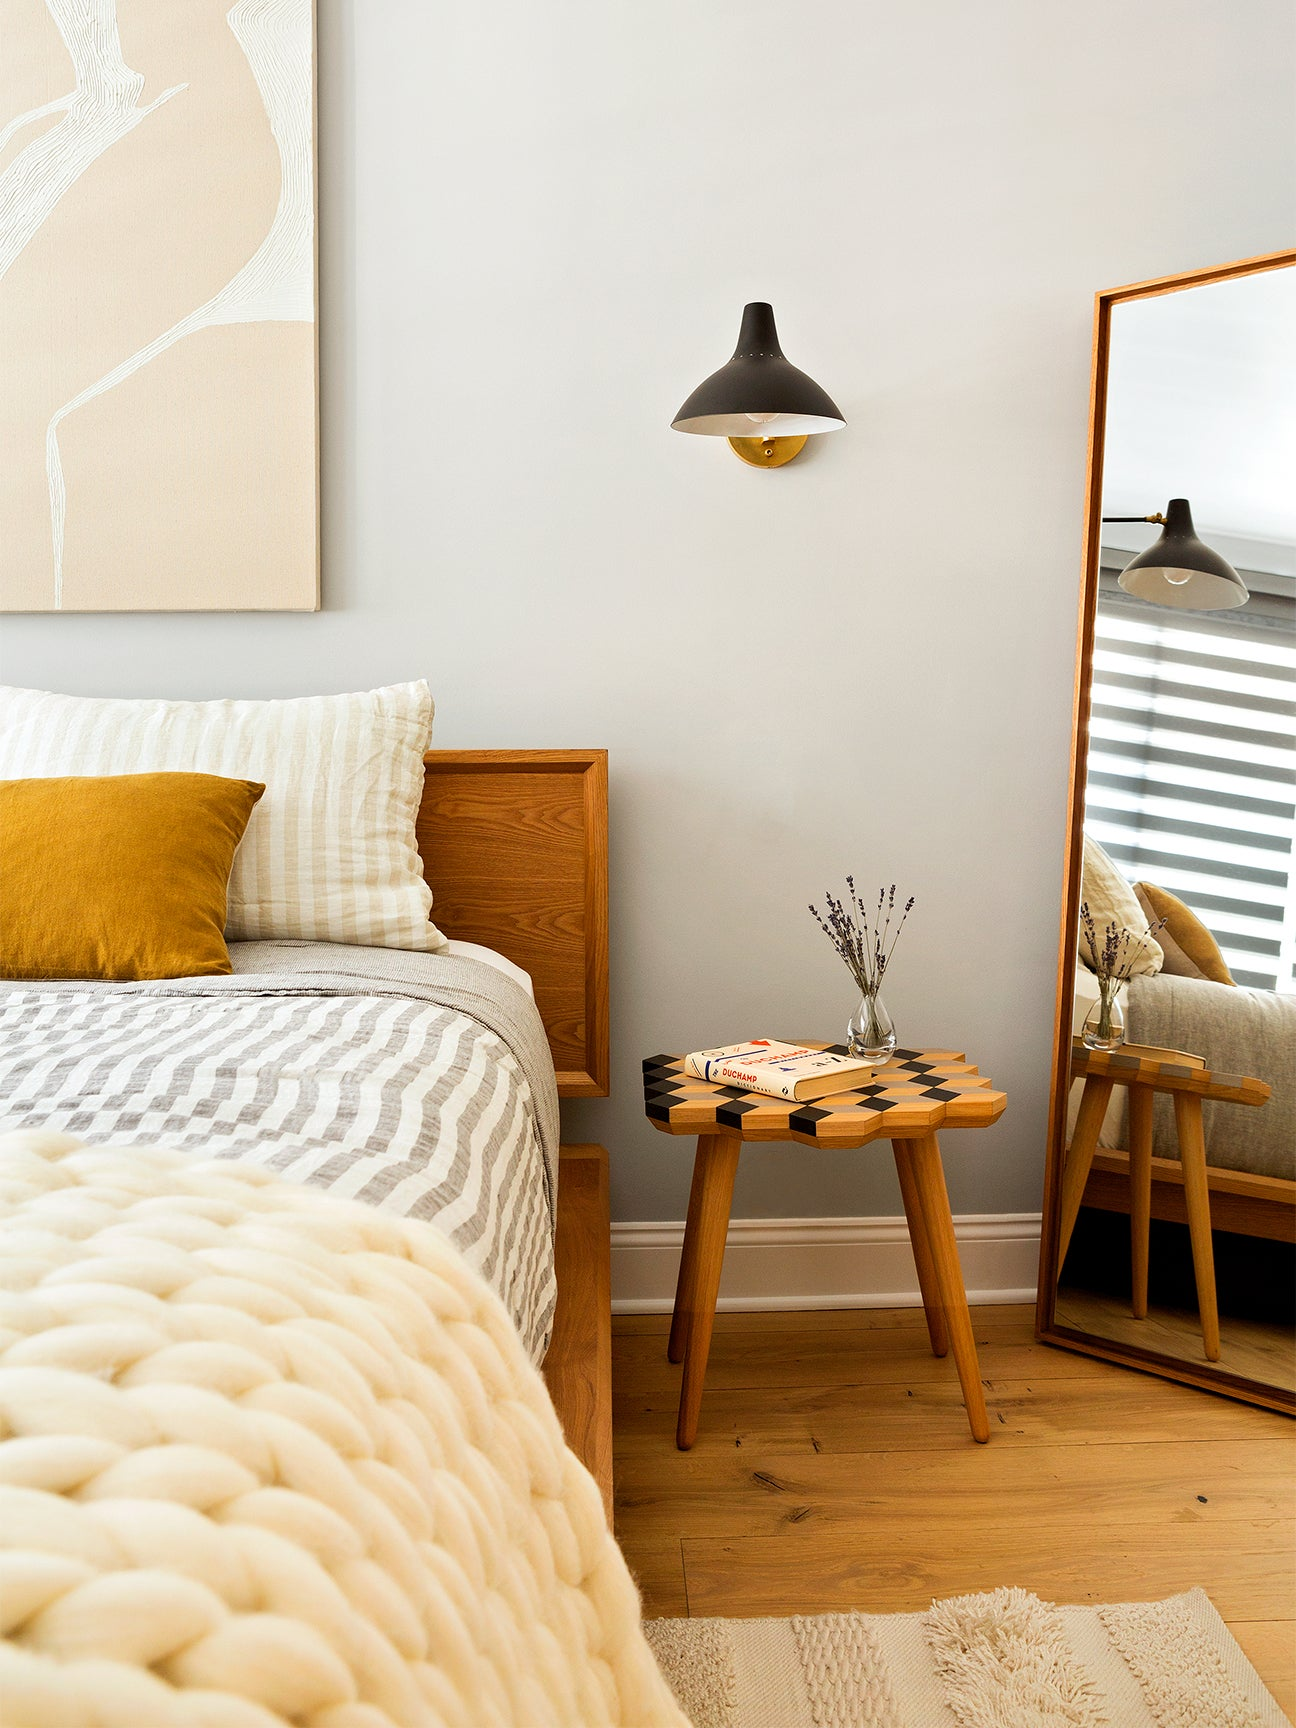 00-FEATURE-perfectly-made-beds-domino